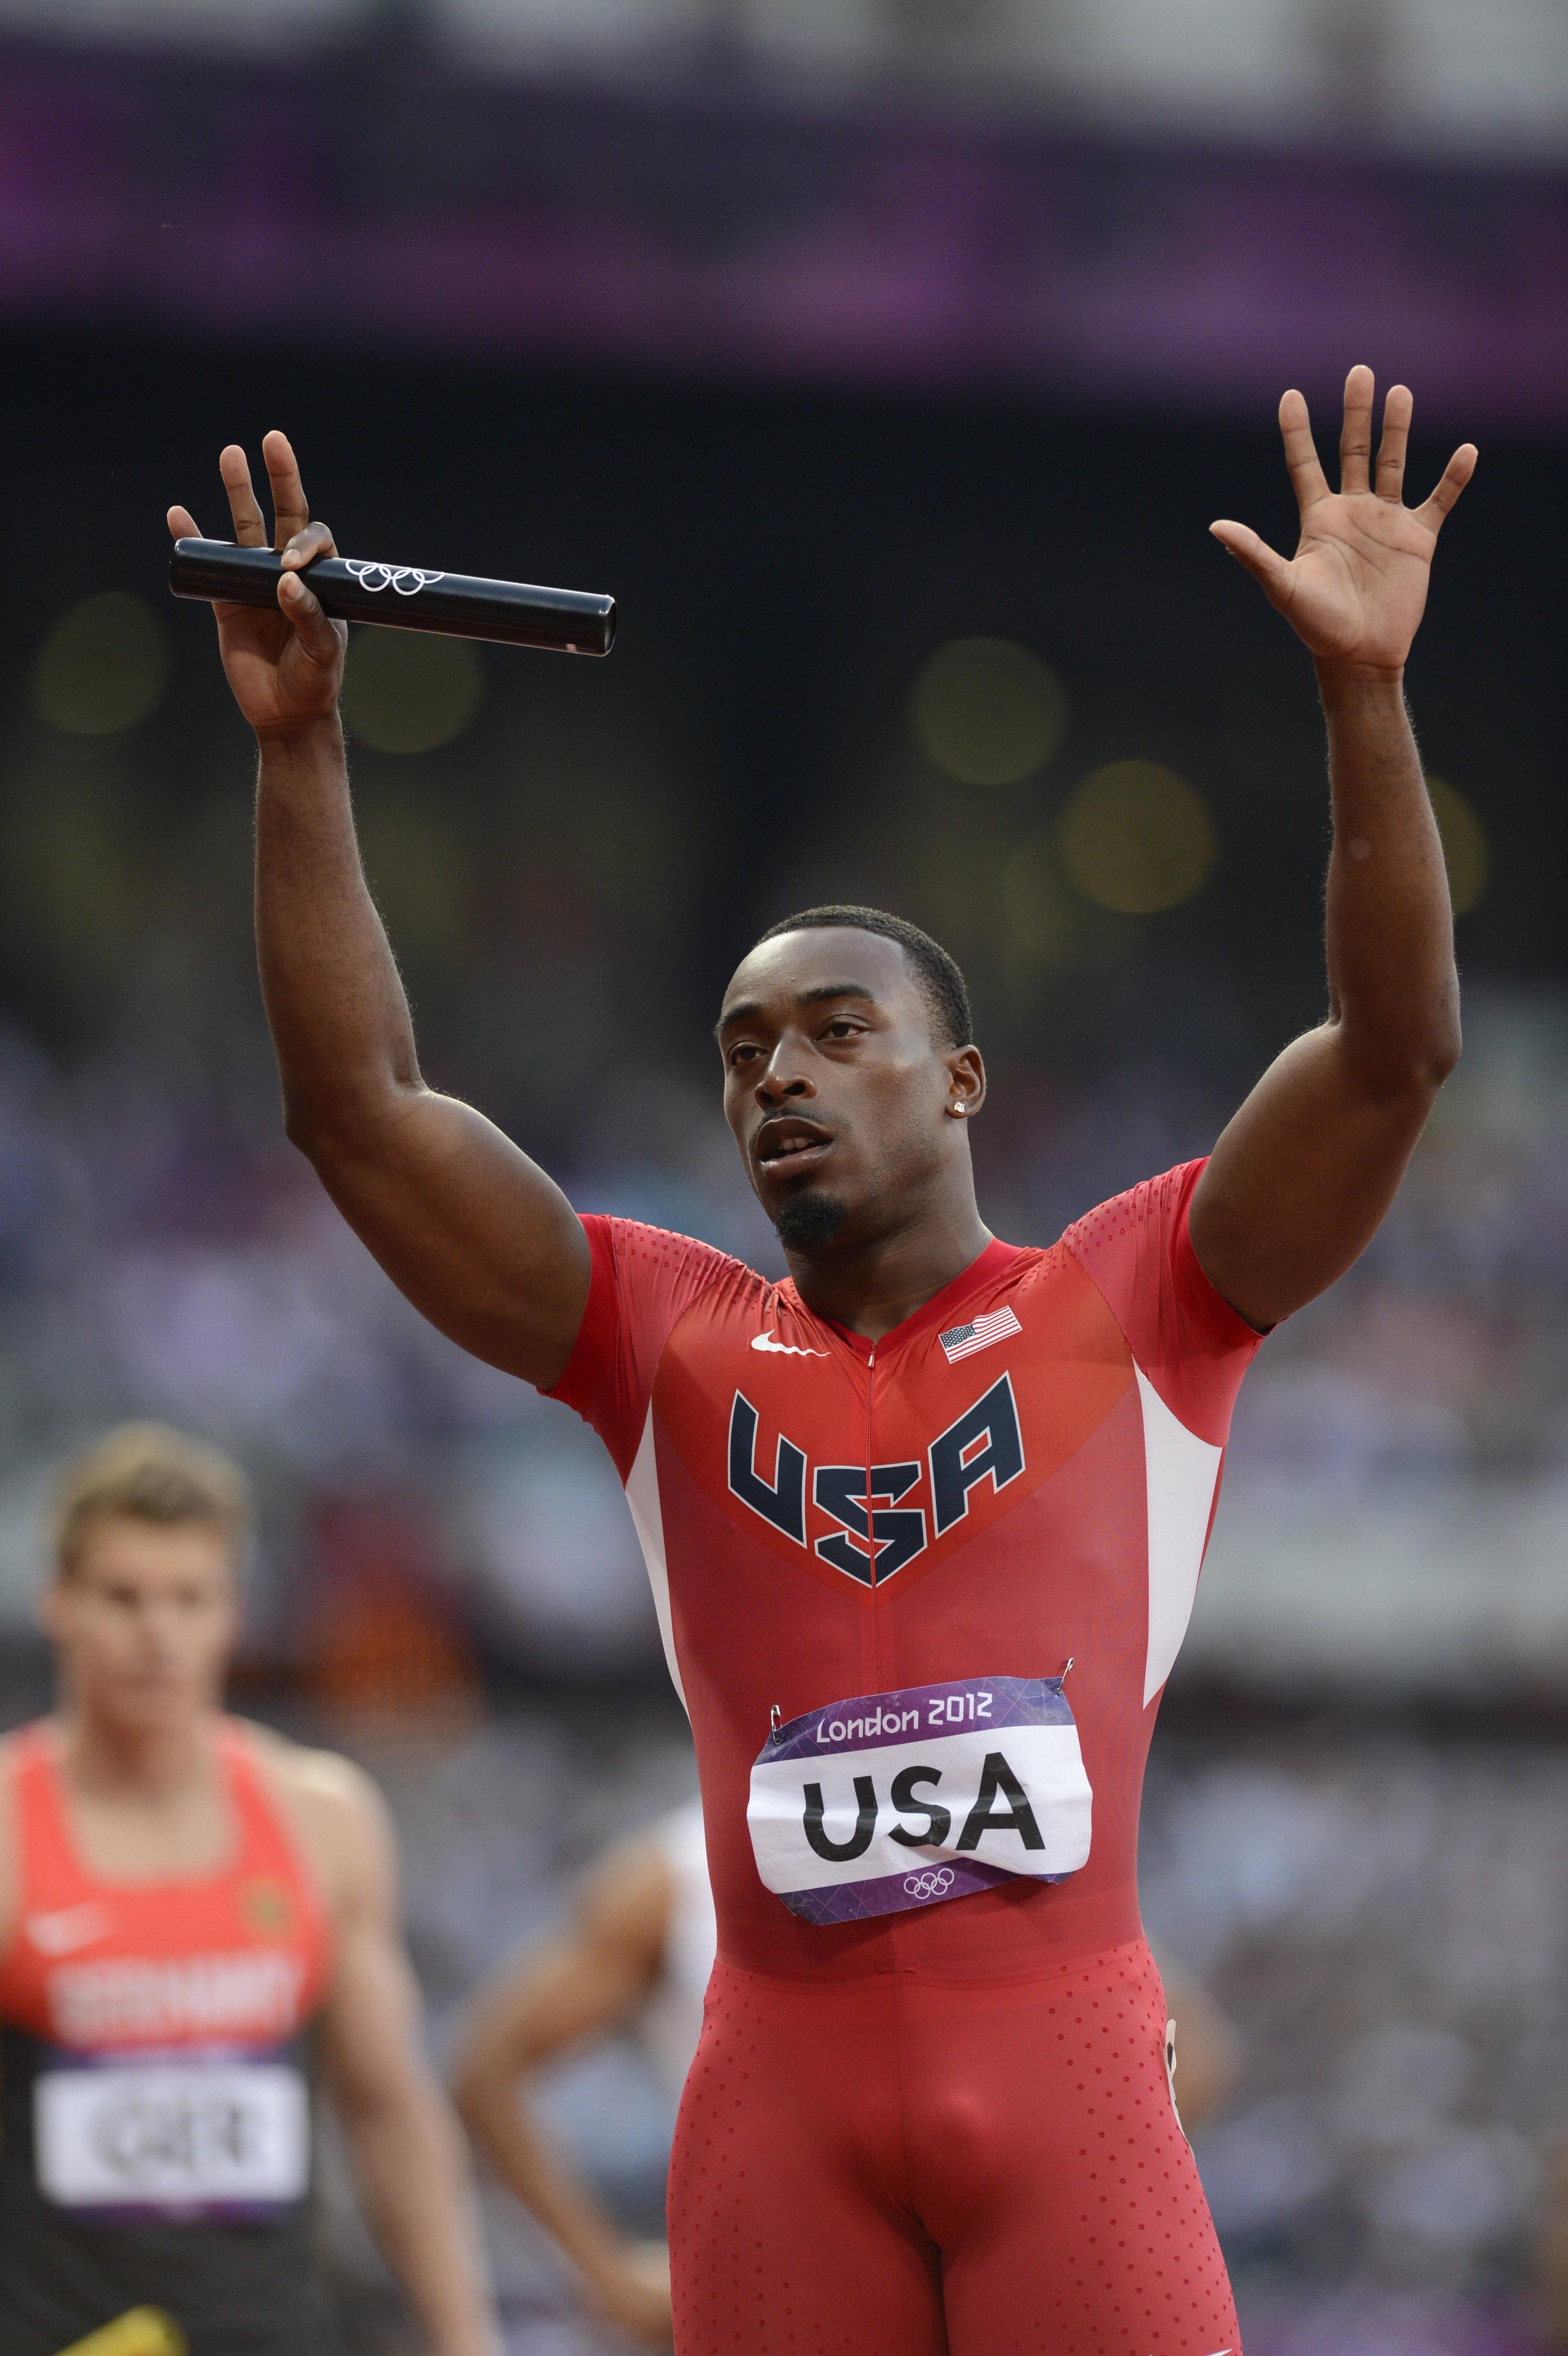 Aug 10, 2012; London, United Kingdom; Jeffrey Demps (USA) before competing in the men's 4x100m relay heats during the London 2012 Olympic Games at Olympic Stadium. Mandatory Credit: John David Mercer-USA TODAY Sports